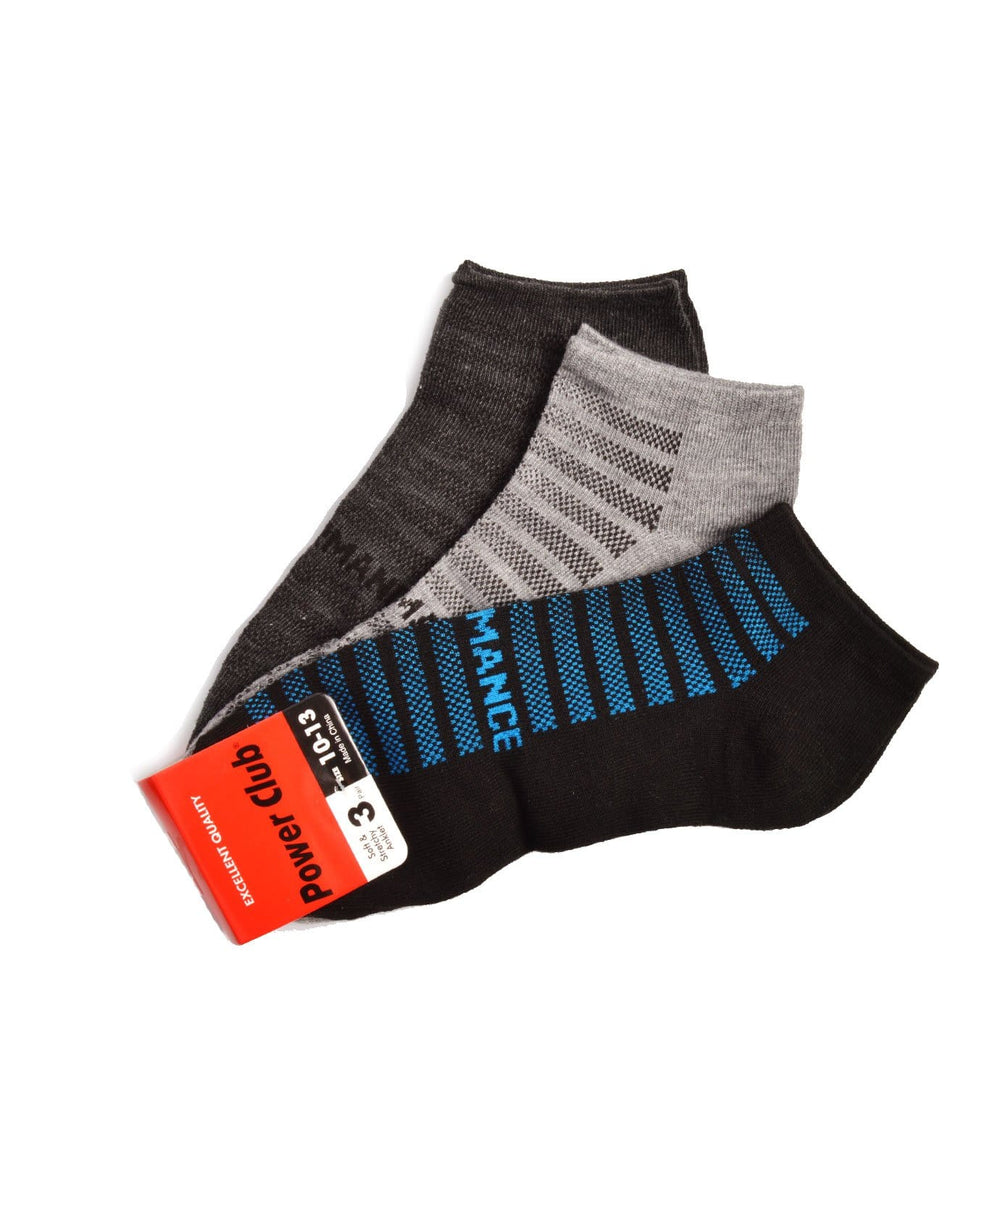 Power Cub Performance Men's Fashion Socks